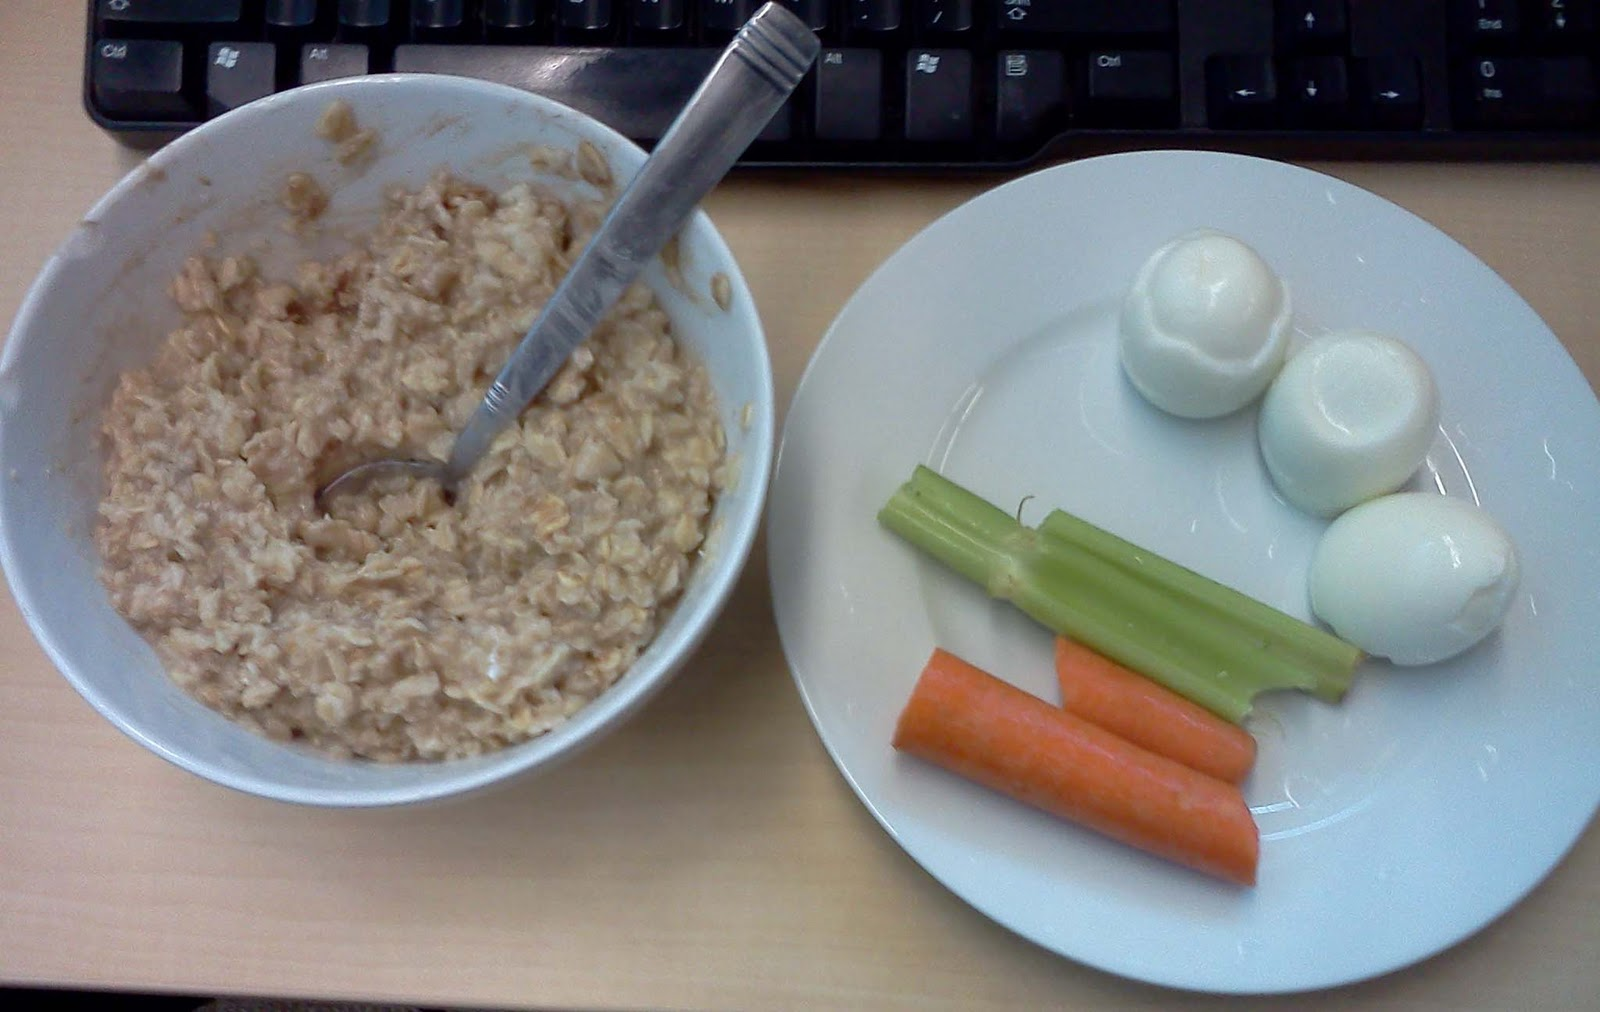 Breakfast Sadly I Did What Bet A Lot Of People On Busy Schedule And Tight Budget Do Skipped Because Didnt Have Any Food To Eat But The